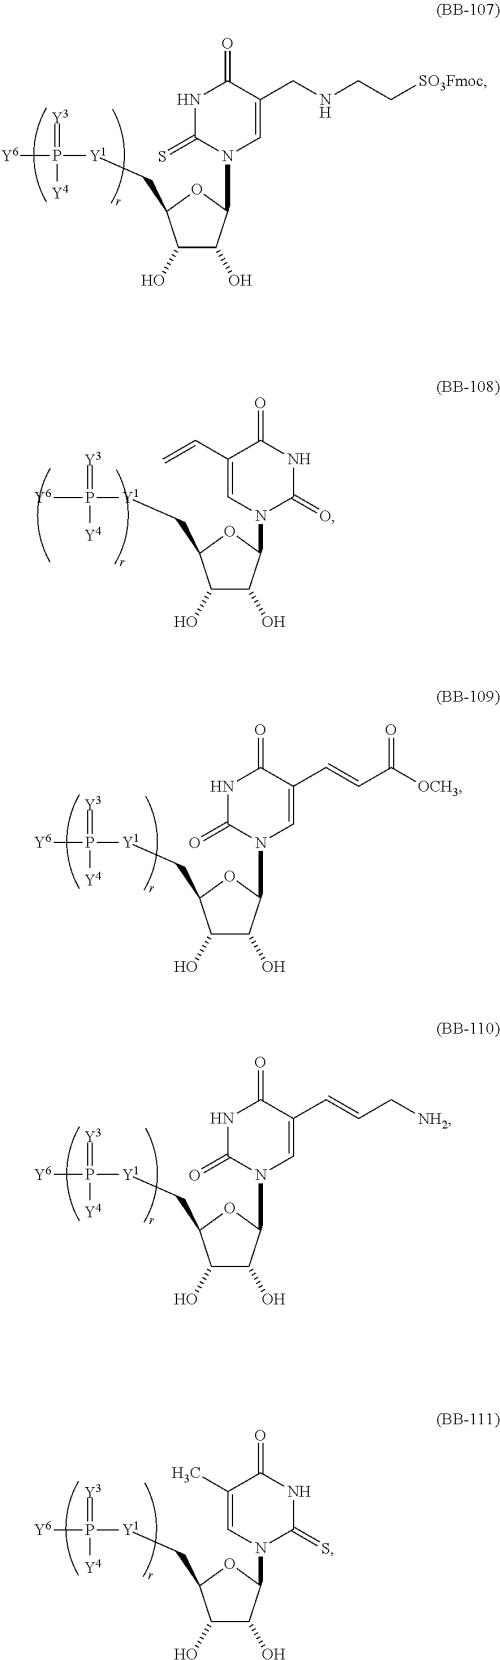 small resolution of us9220755b2 modified polynucleotides for the production of proteins associated with blood and lymphatic disorders google patents